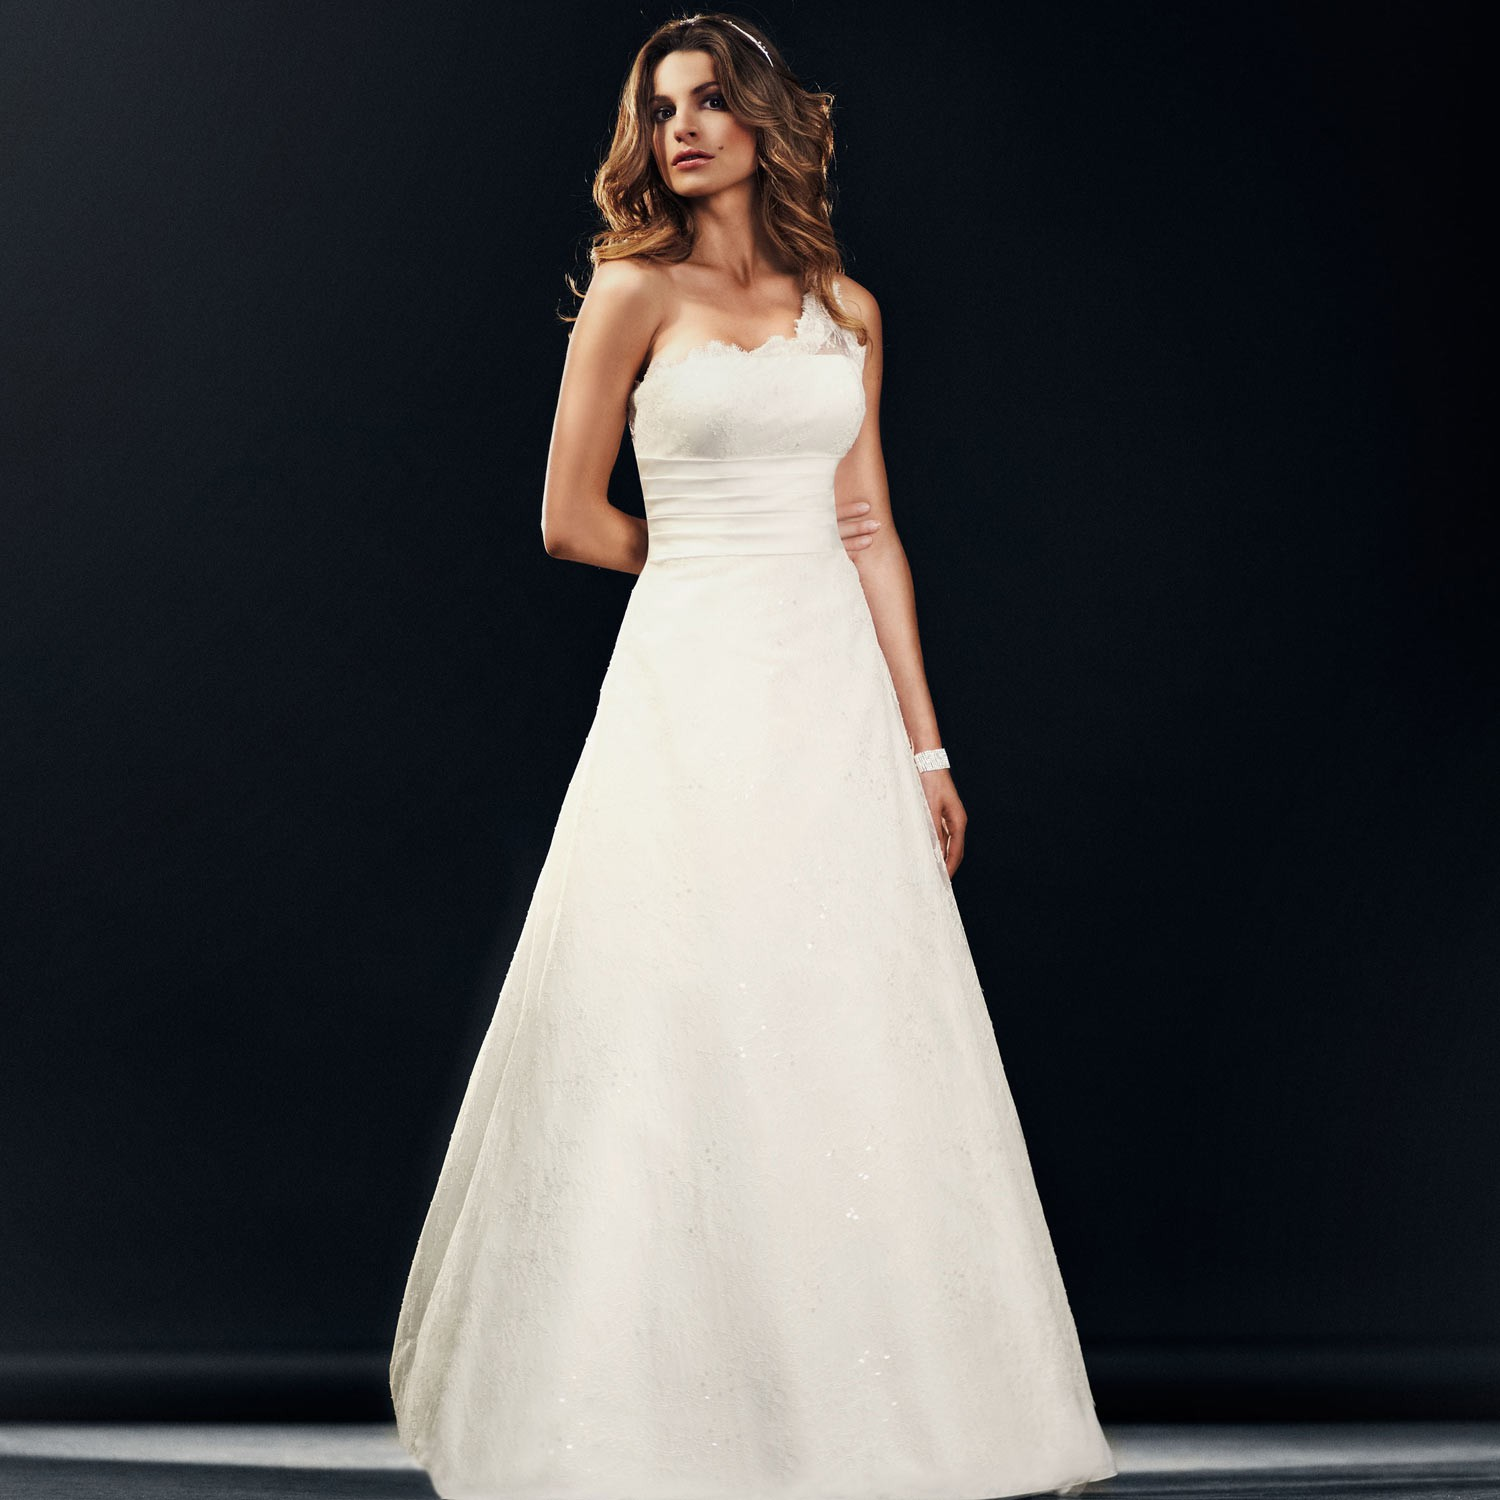 robe mariee simple pas cher le mariage With robes mariage pas cher